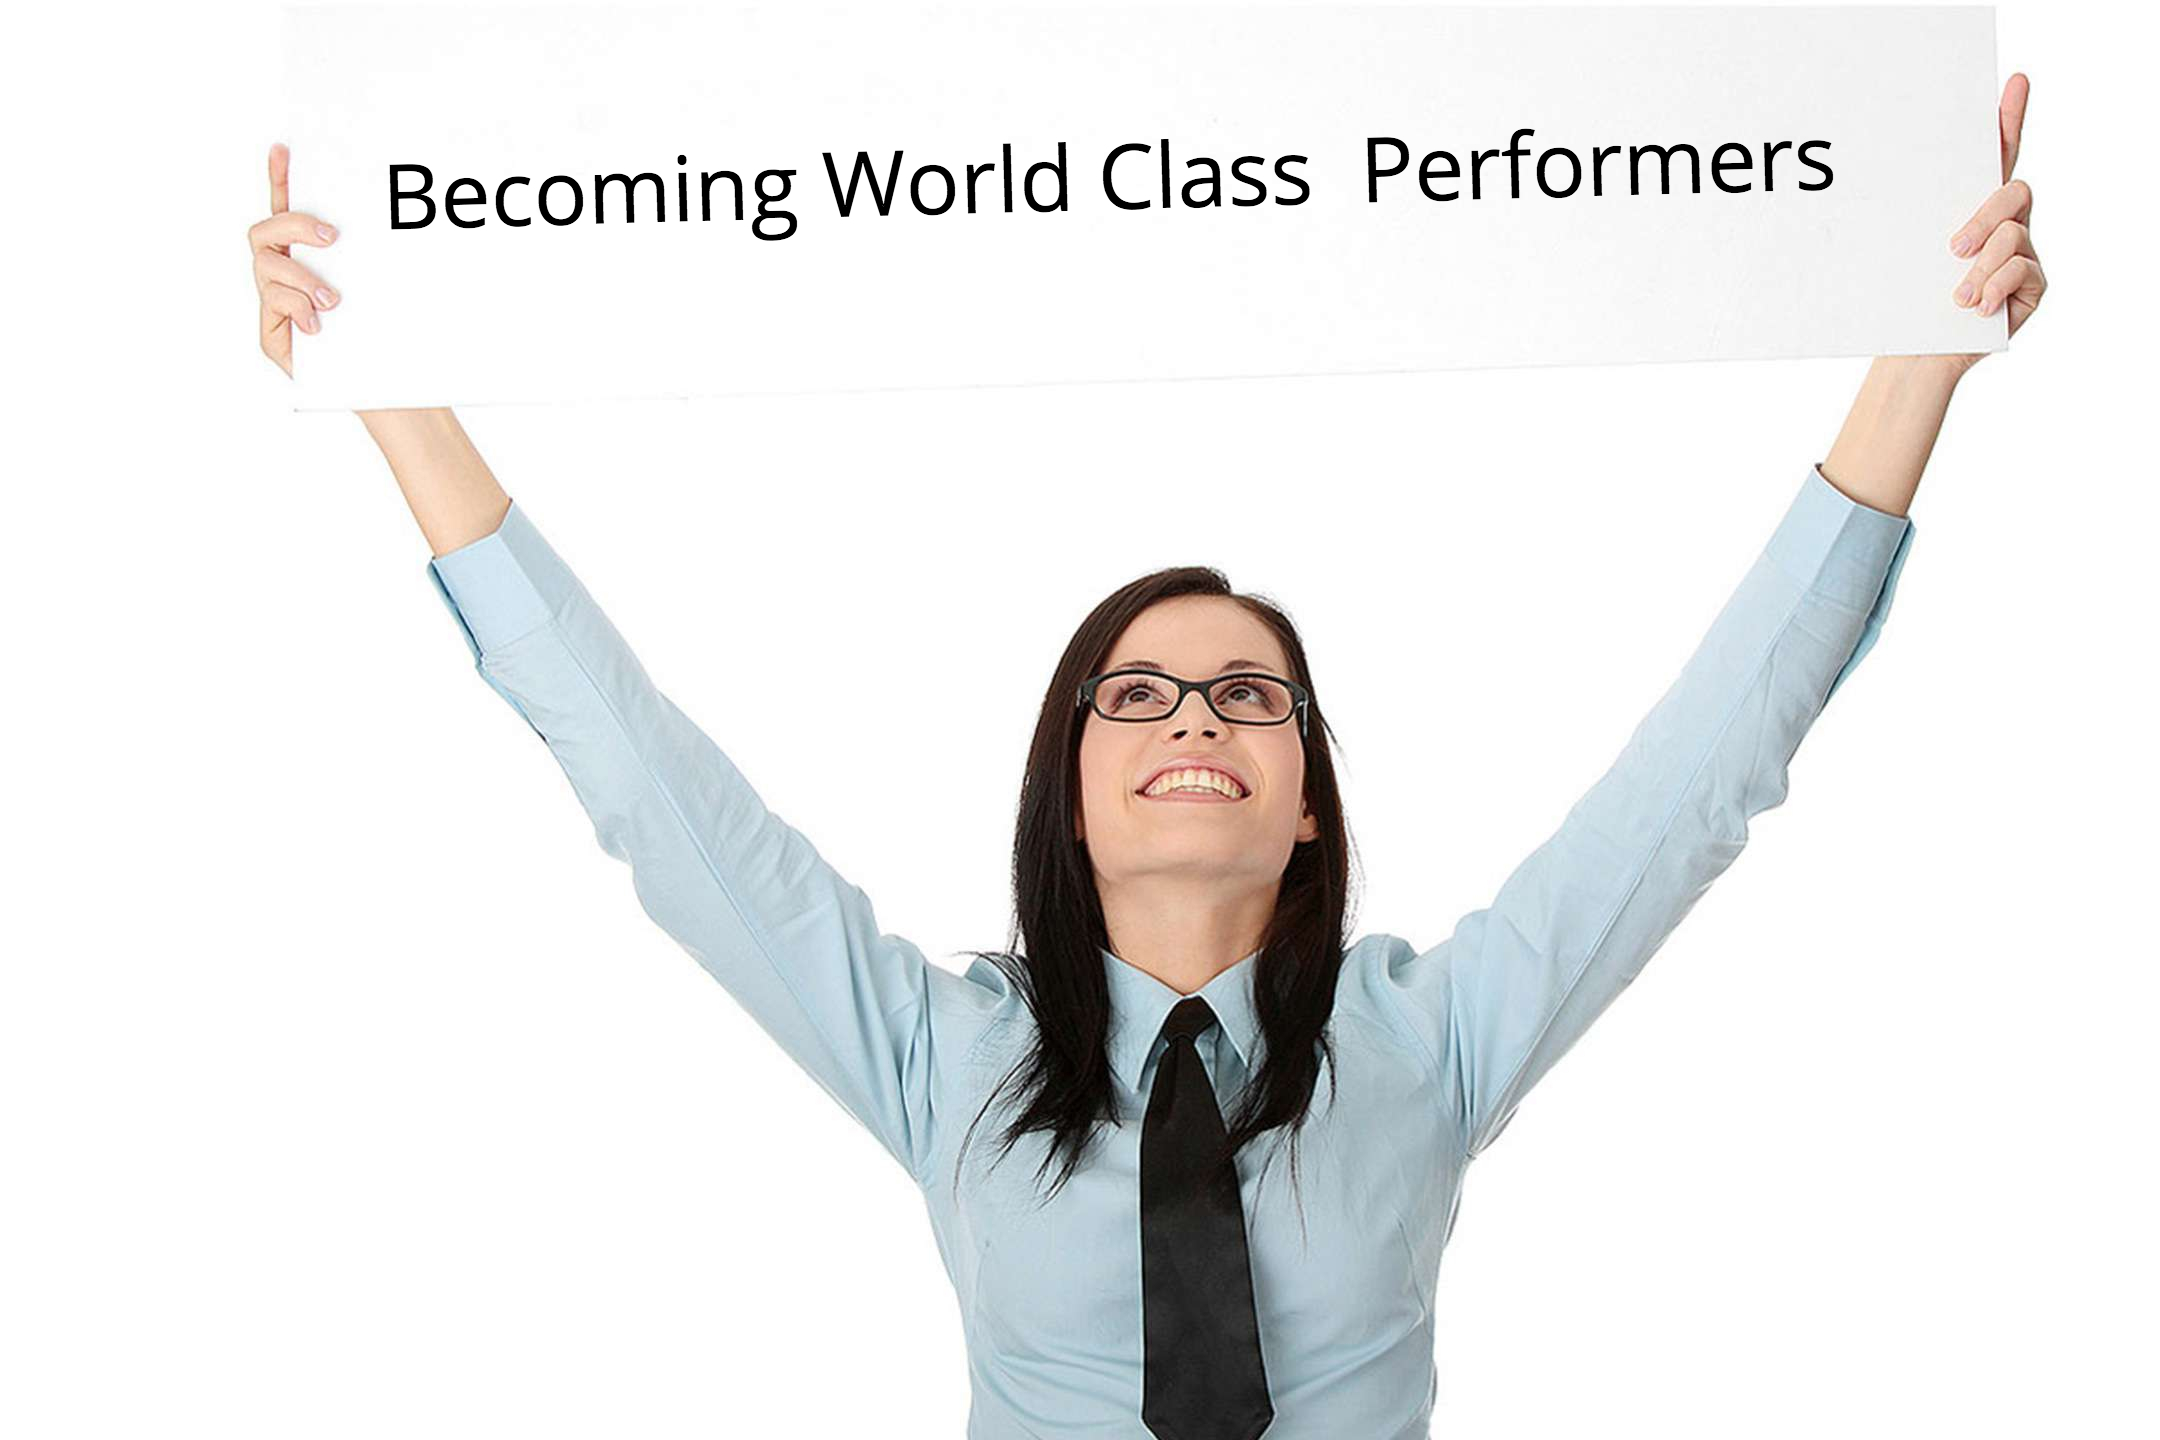 Becoming World Class Performers